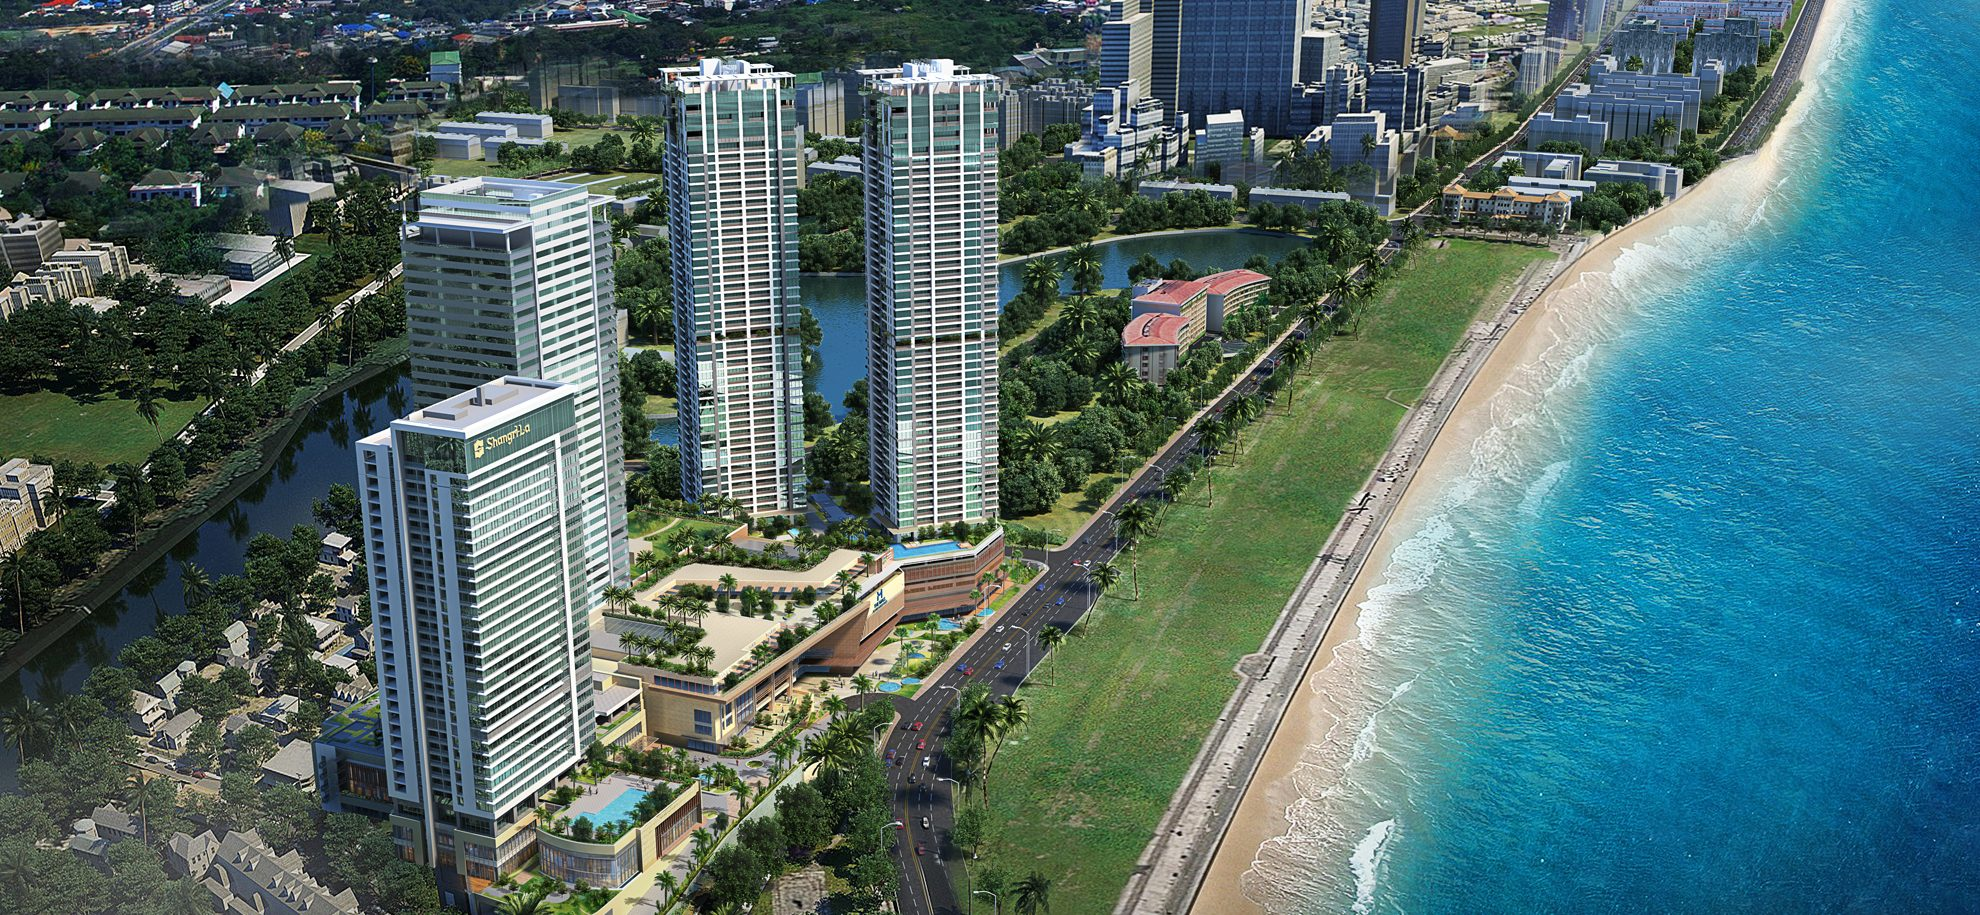 Shangri La Hotel Colombo Introducing A New Level Of